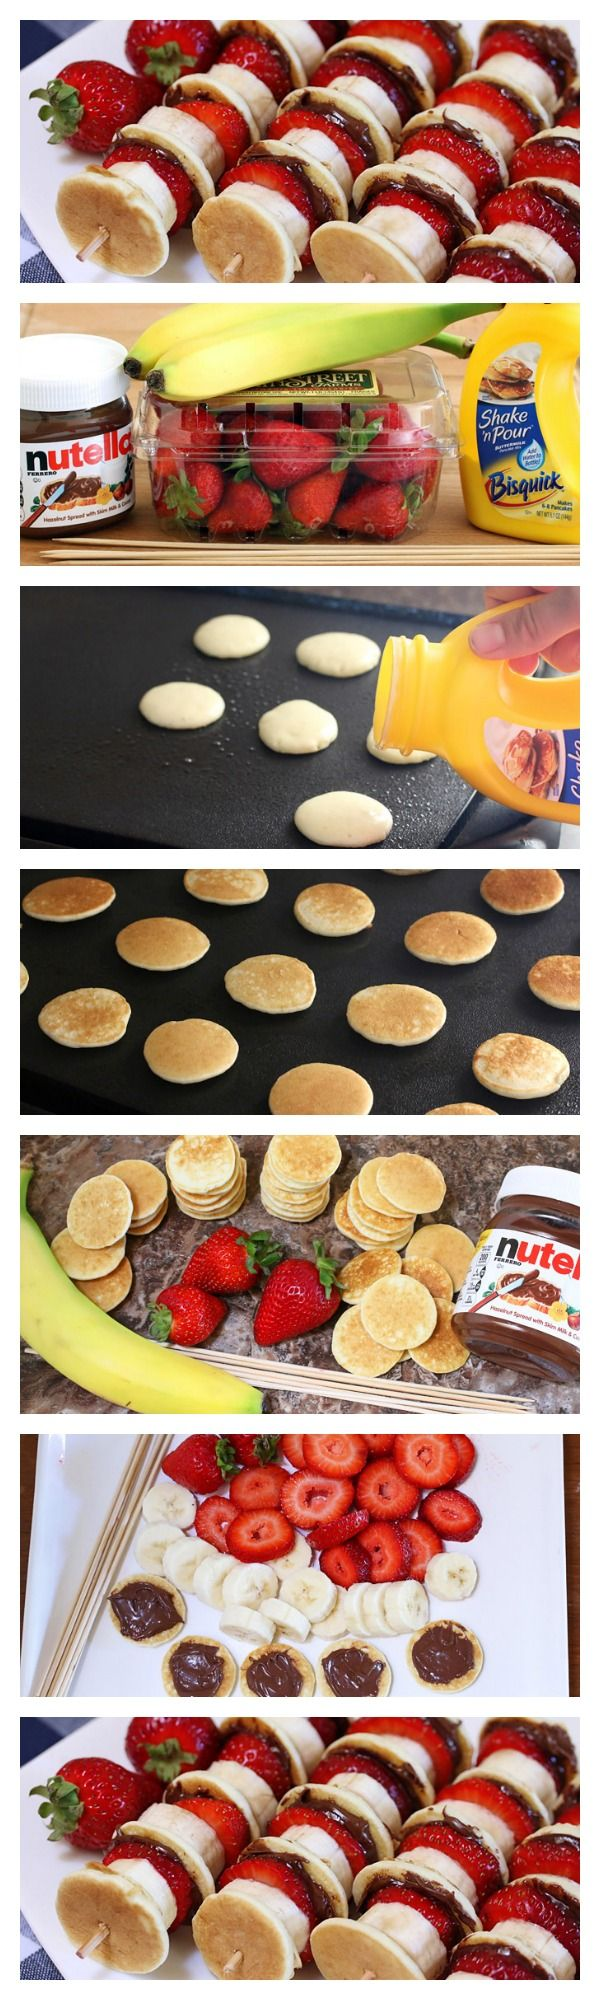 Strawberry Nutella Mini Pancake Kabobs ❥•*´`°•.ツ❥•☼☆•*´`°•.☼☆❥•*°•.ツ